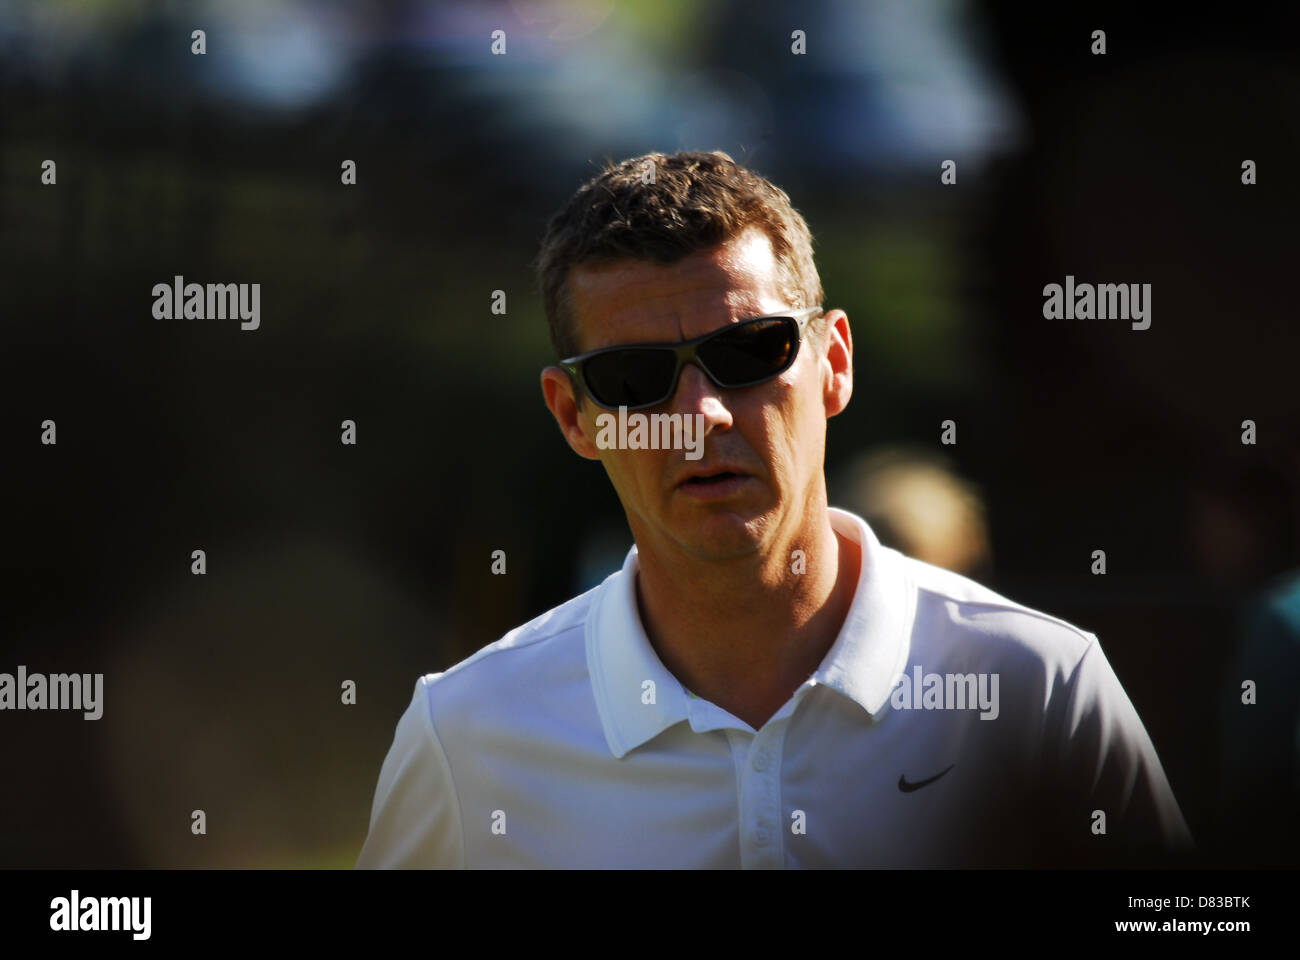 Steve Cram MBE playing the Cromwell Course The Homefoods British Par 3 Championships held in Nailcote Hall Warwickshire, - Stock Image